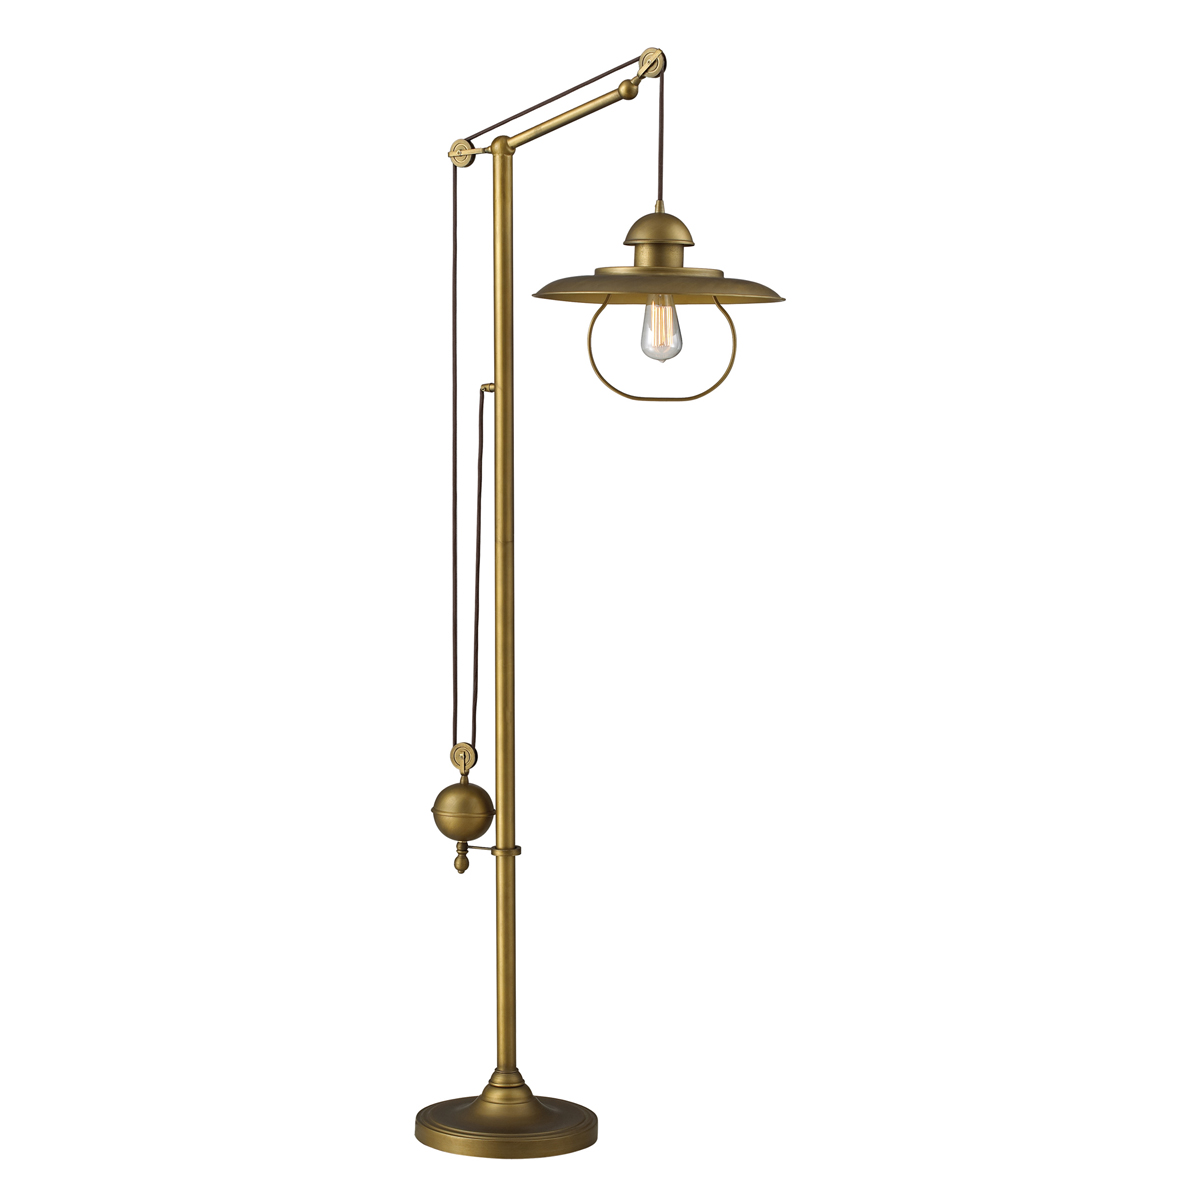 Landmark Lighting 1 Farmhouse Antique Brass Floor Lamp in Antique Bra